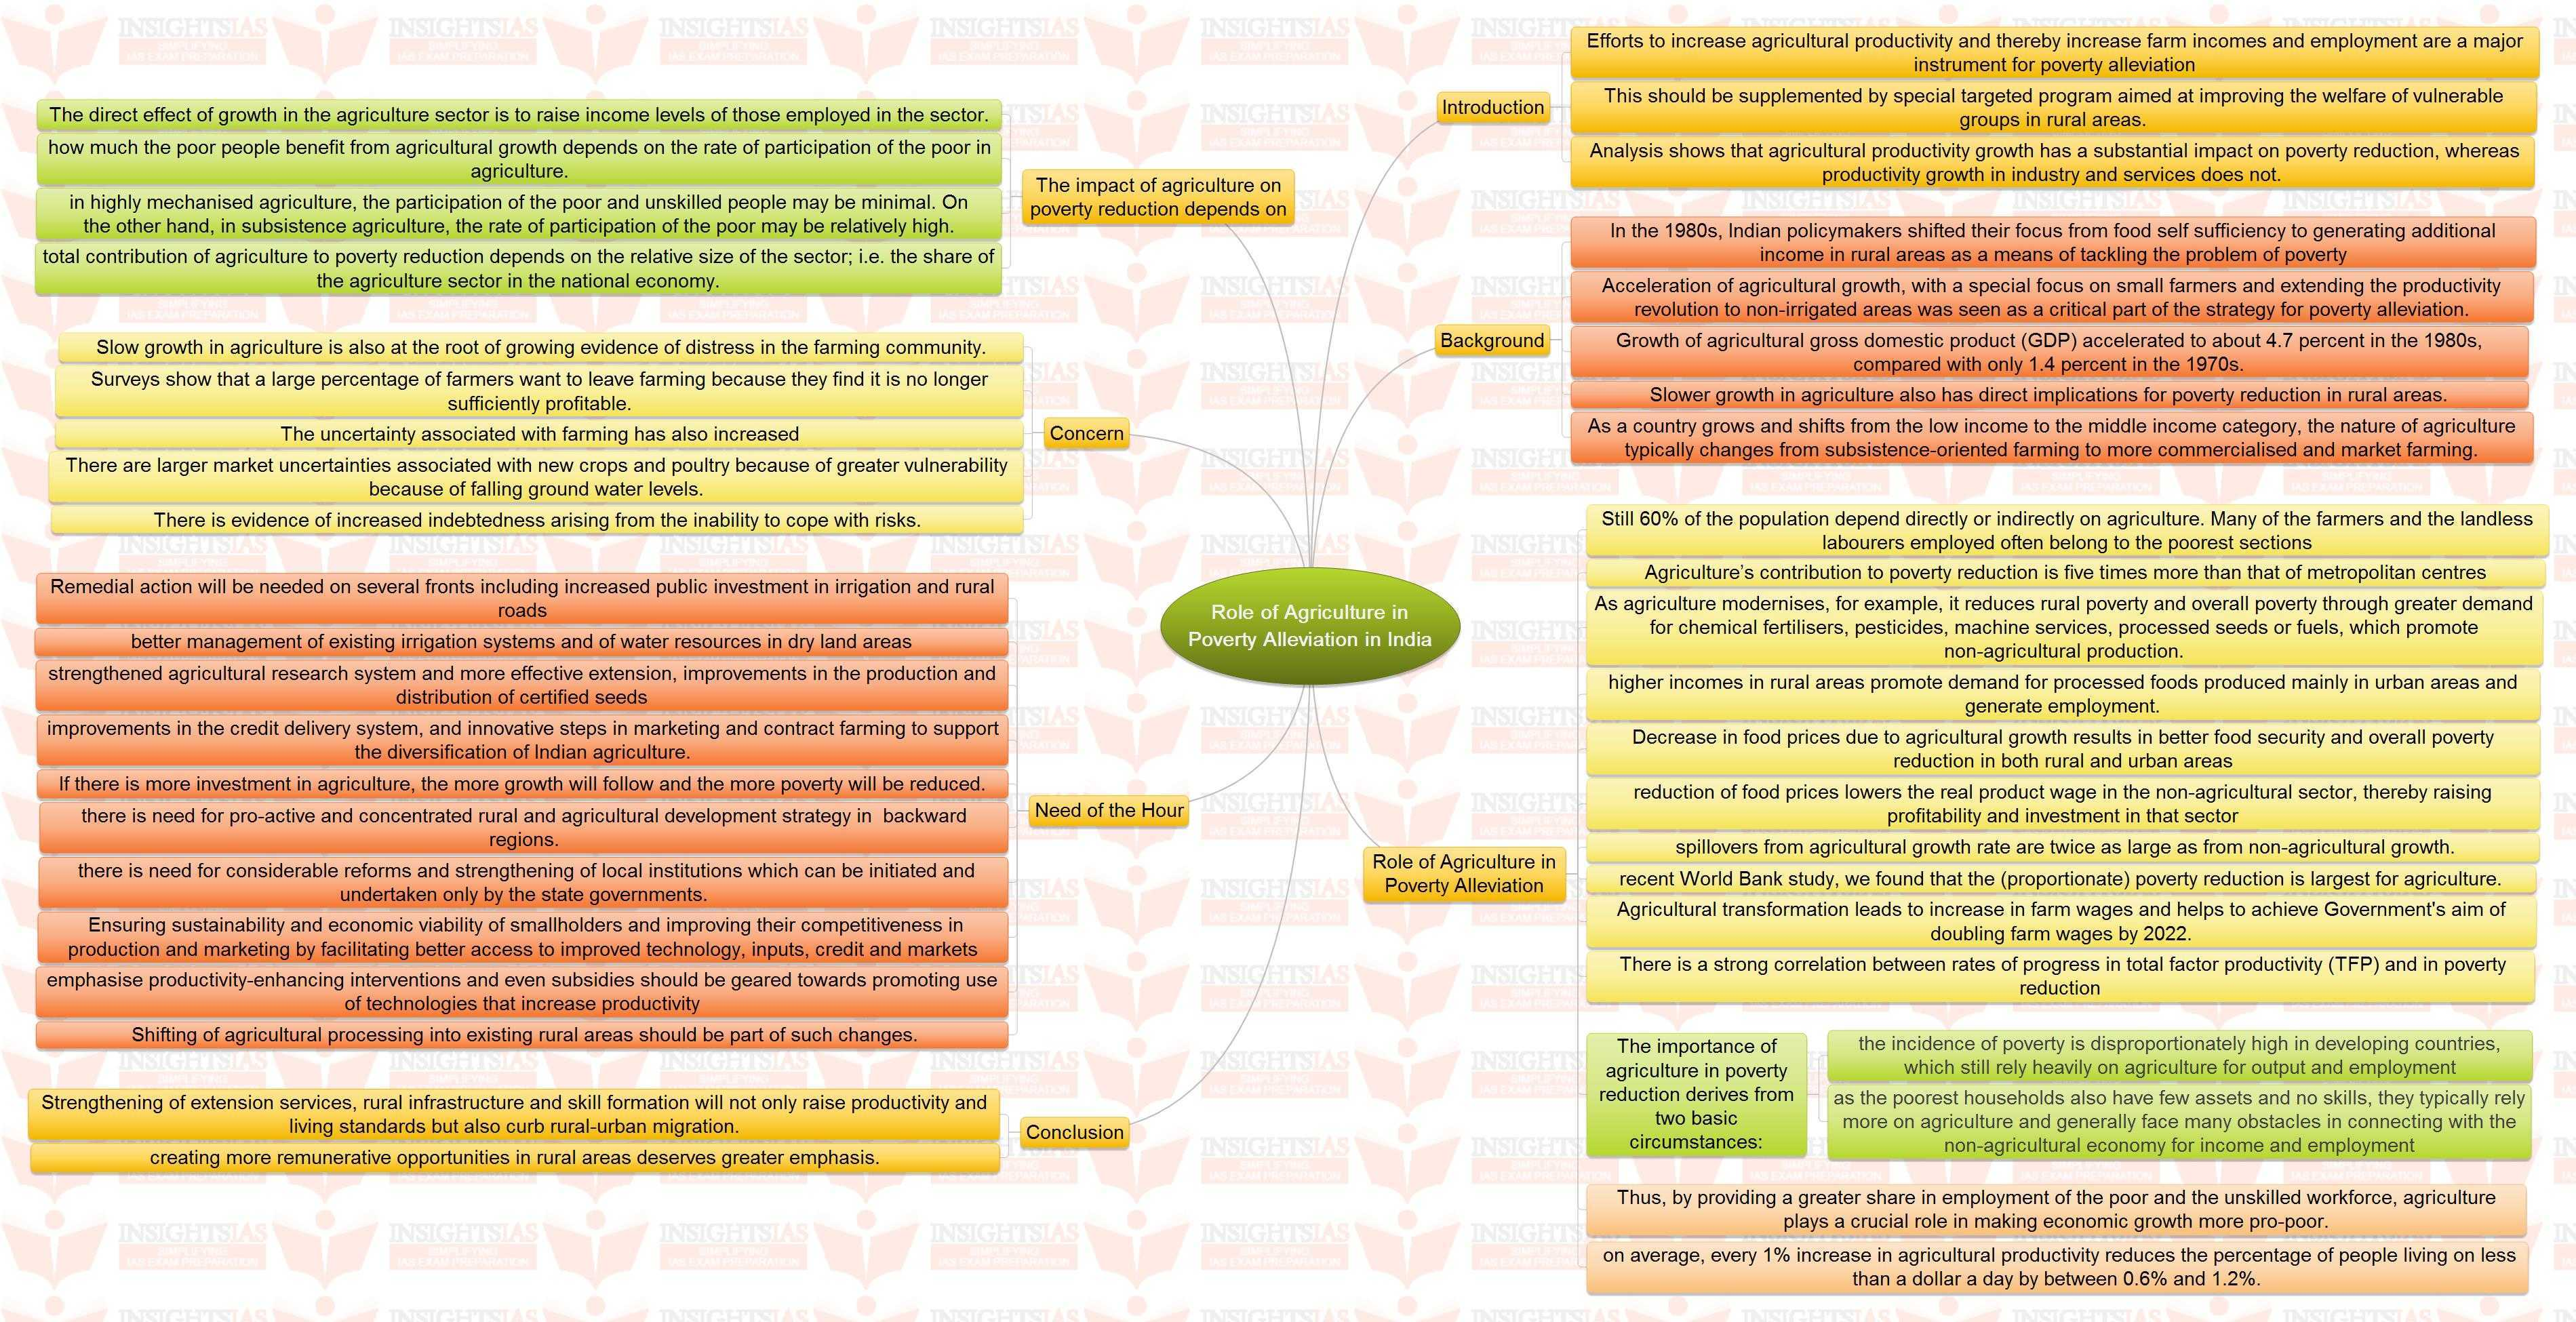 insights mindmaps ban on chinese goods in and role of  insights mindmaps ban on chinese goods in and role of agriculture in poverty alleviation in insights